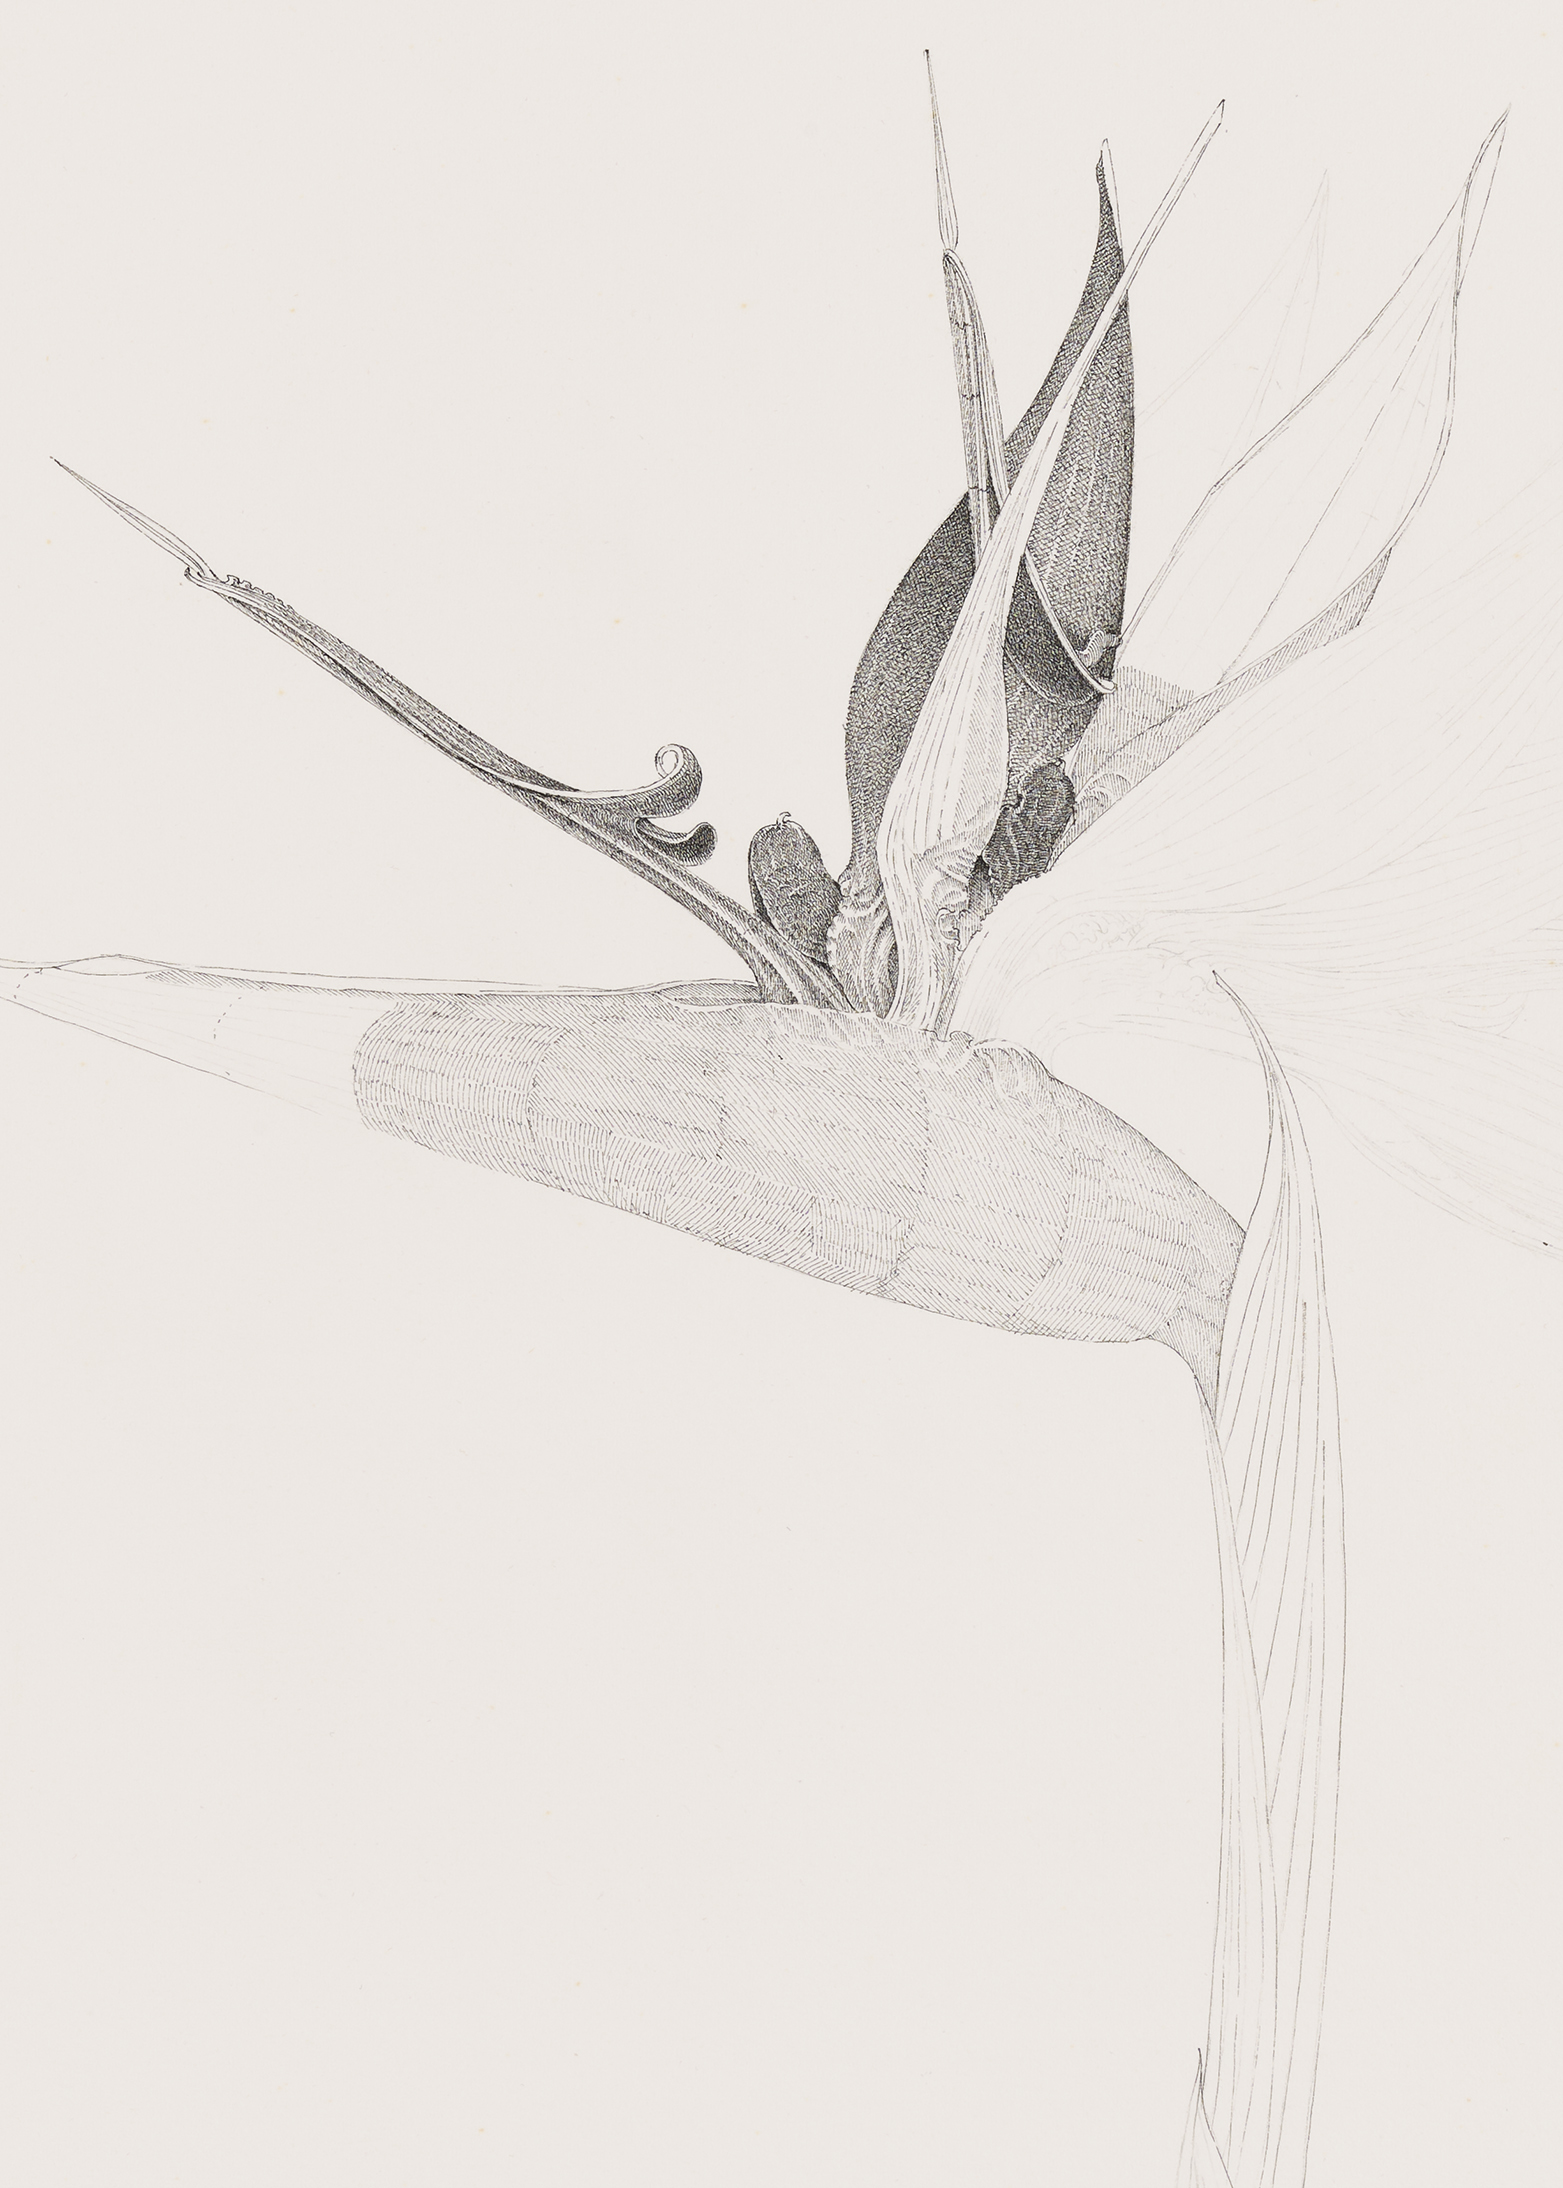 Charmian Johnson, not titled (detail), unknown date, ink and graphite on paper, 31 x 23 in. (79 x 58 cm) by